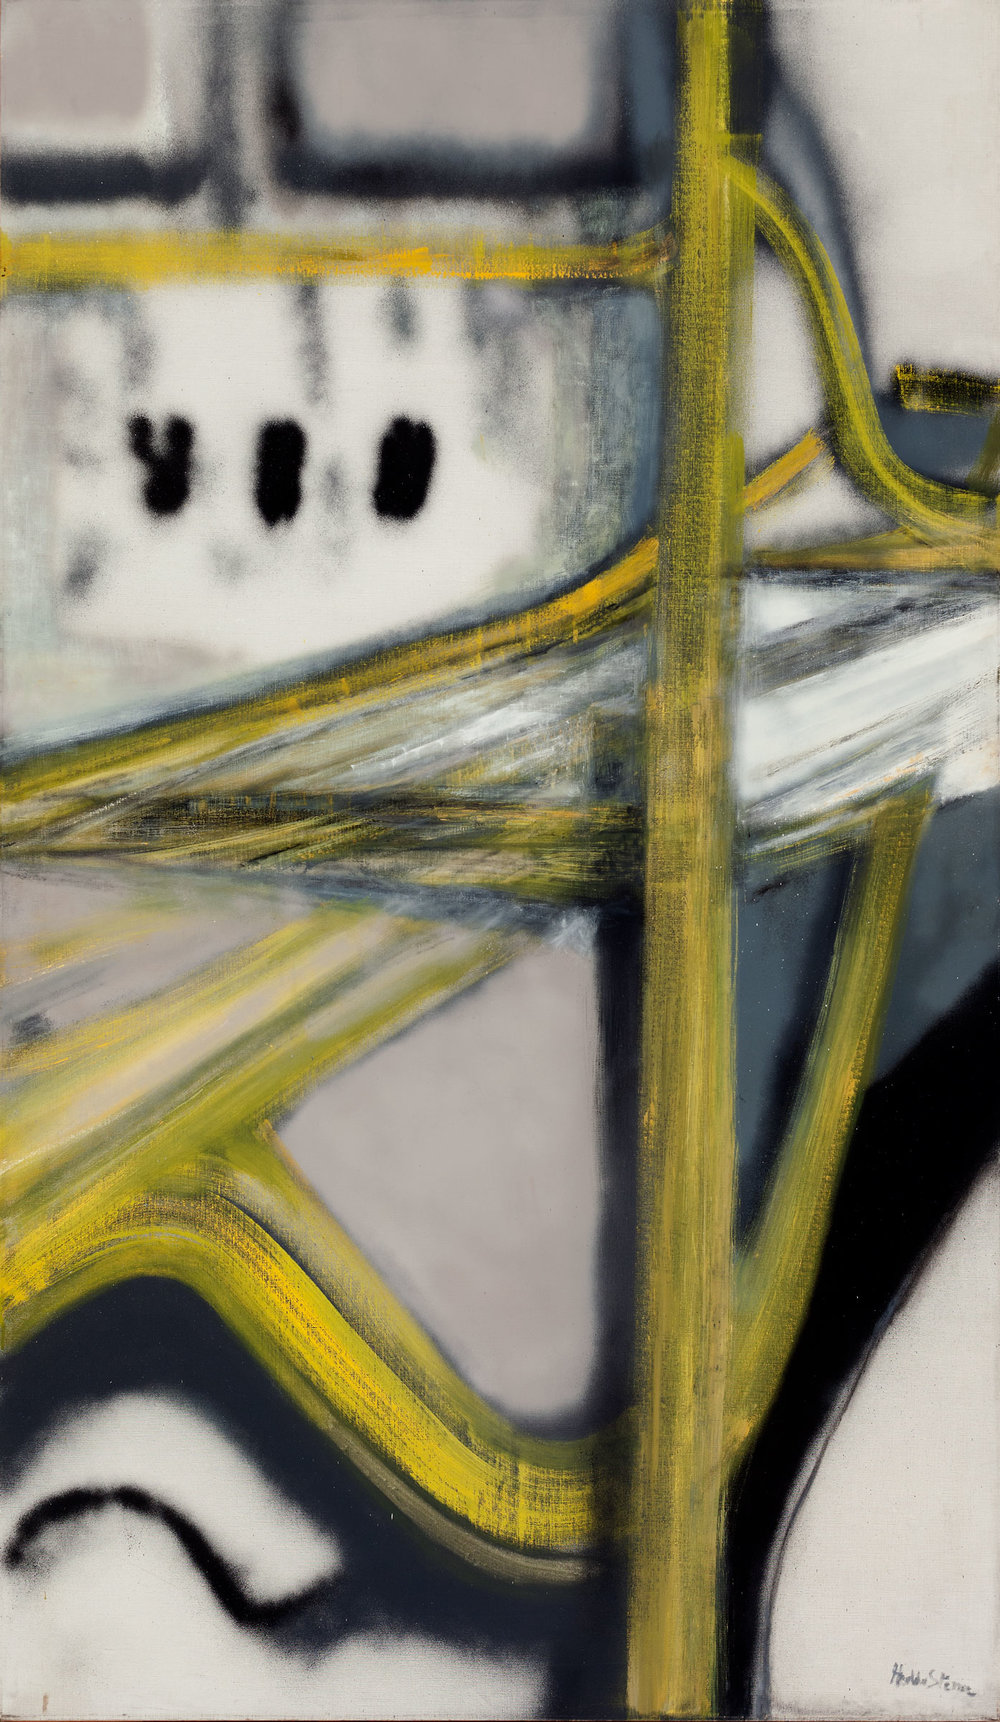 Hedda Sterne,Roads #5, 1957, Oil, spray paint on canvas,86 in. x 50 in.